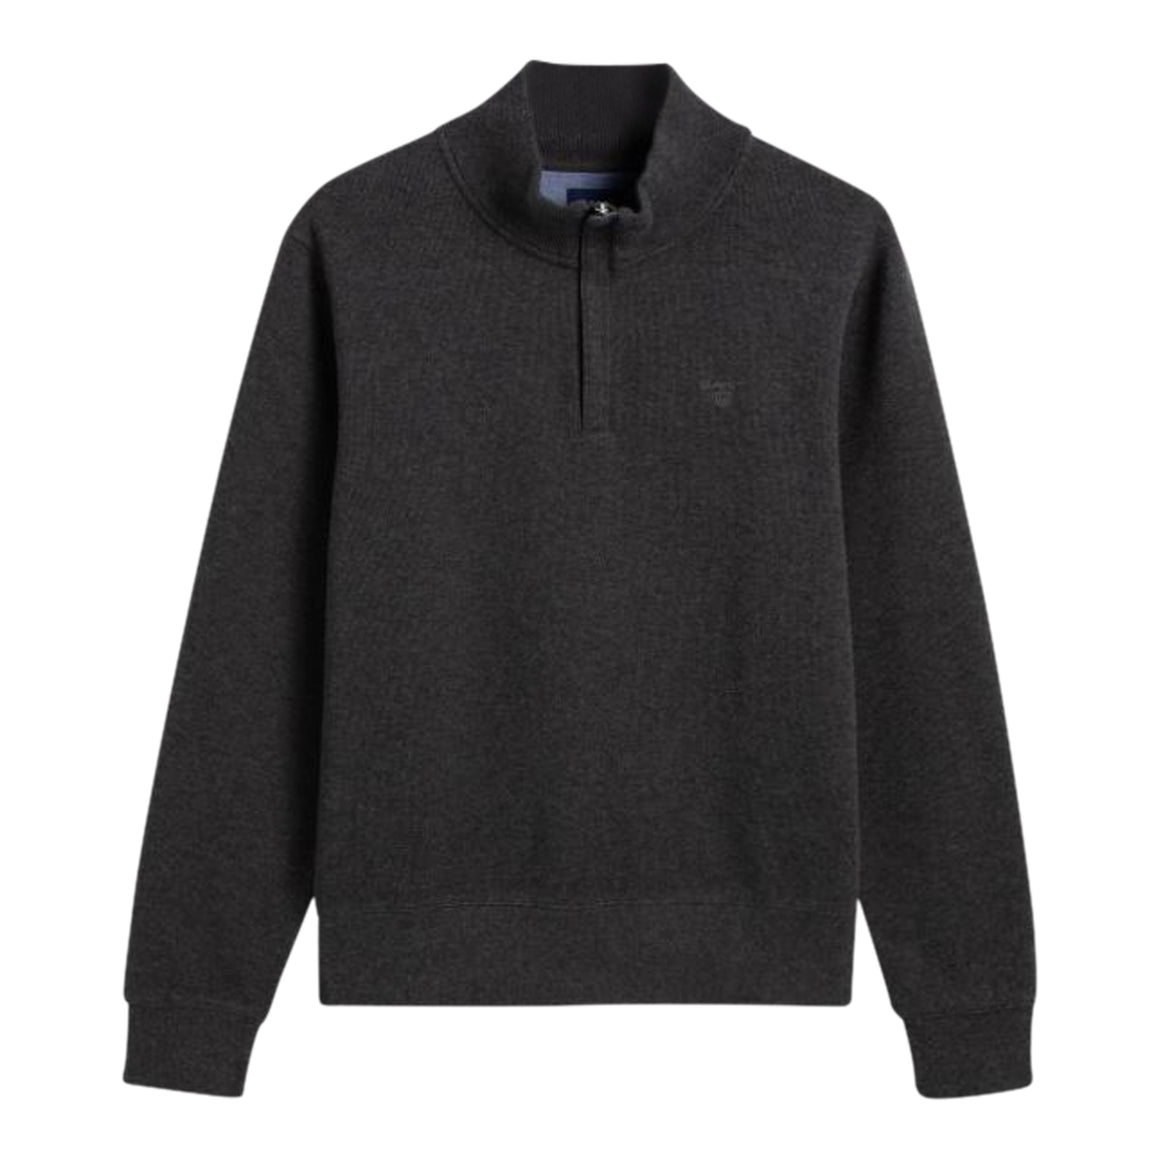 Sacker Rib Half Zip for Men in Anthracite Melange